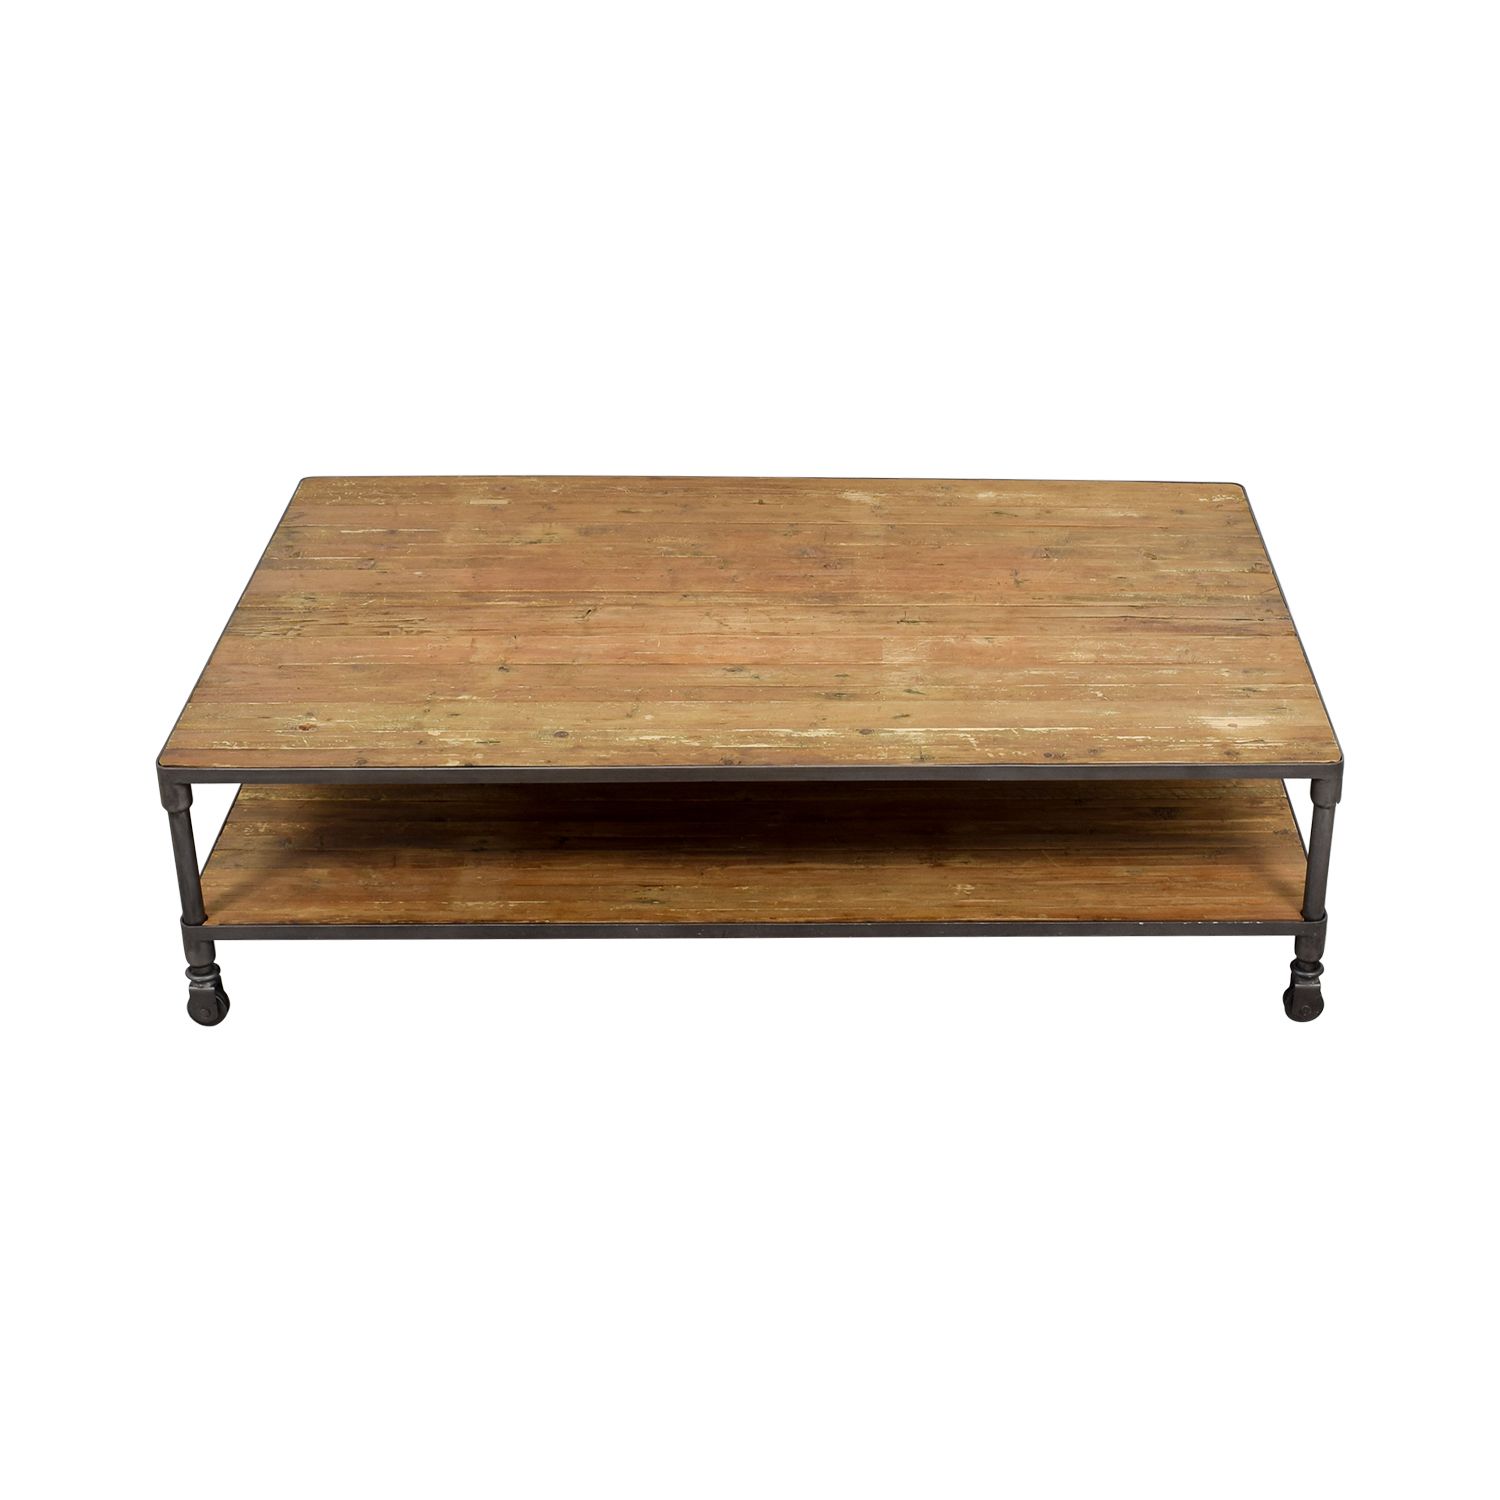 shop ABC Carpet & Home Reclaimed Wood Coffee Table ABC Carpet & Home Coffee Tables